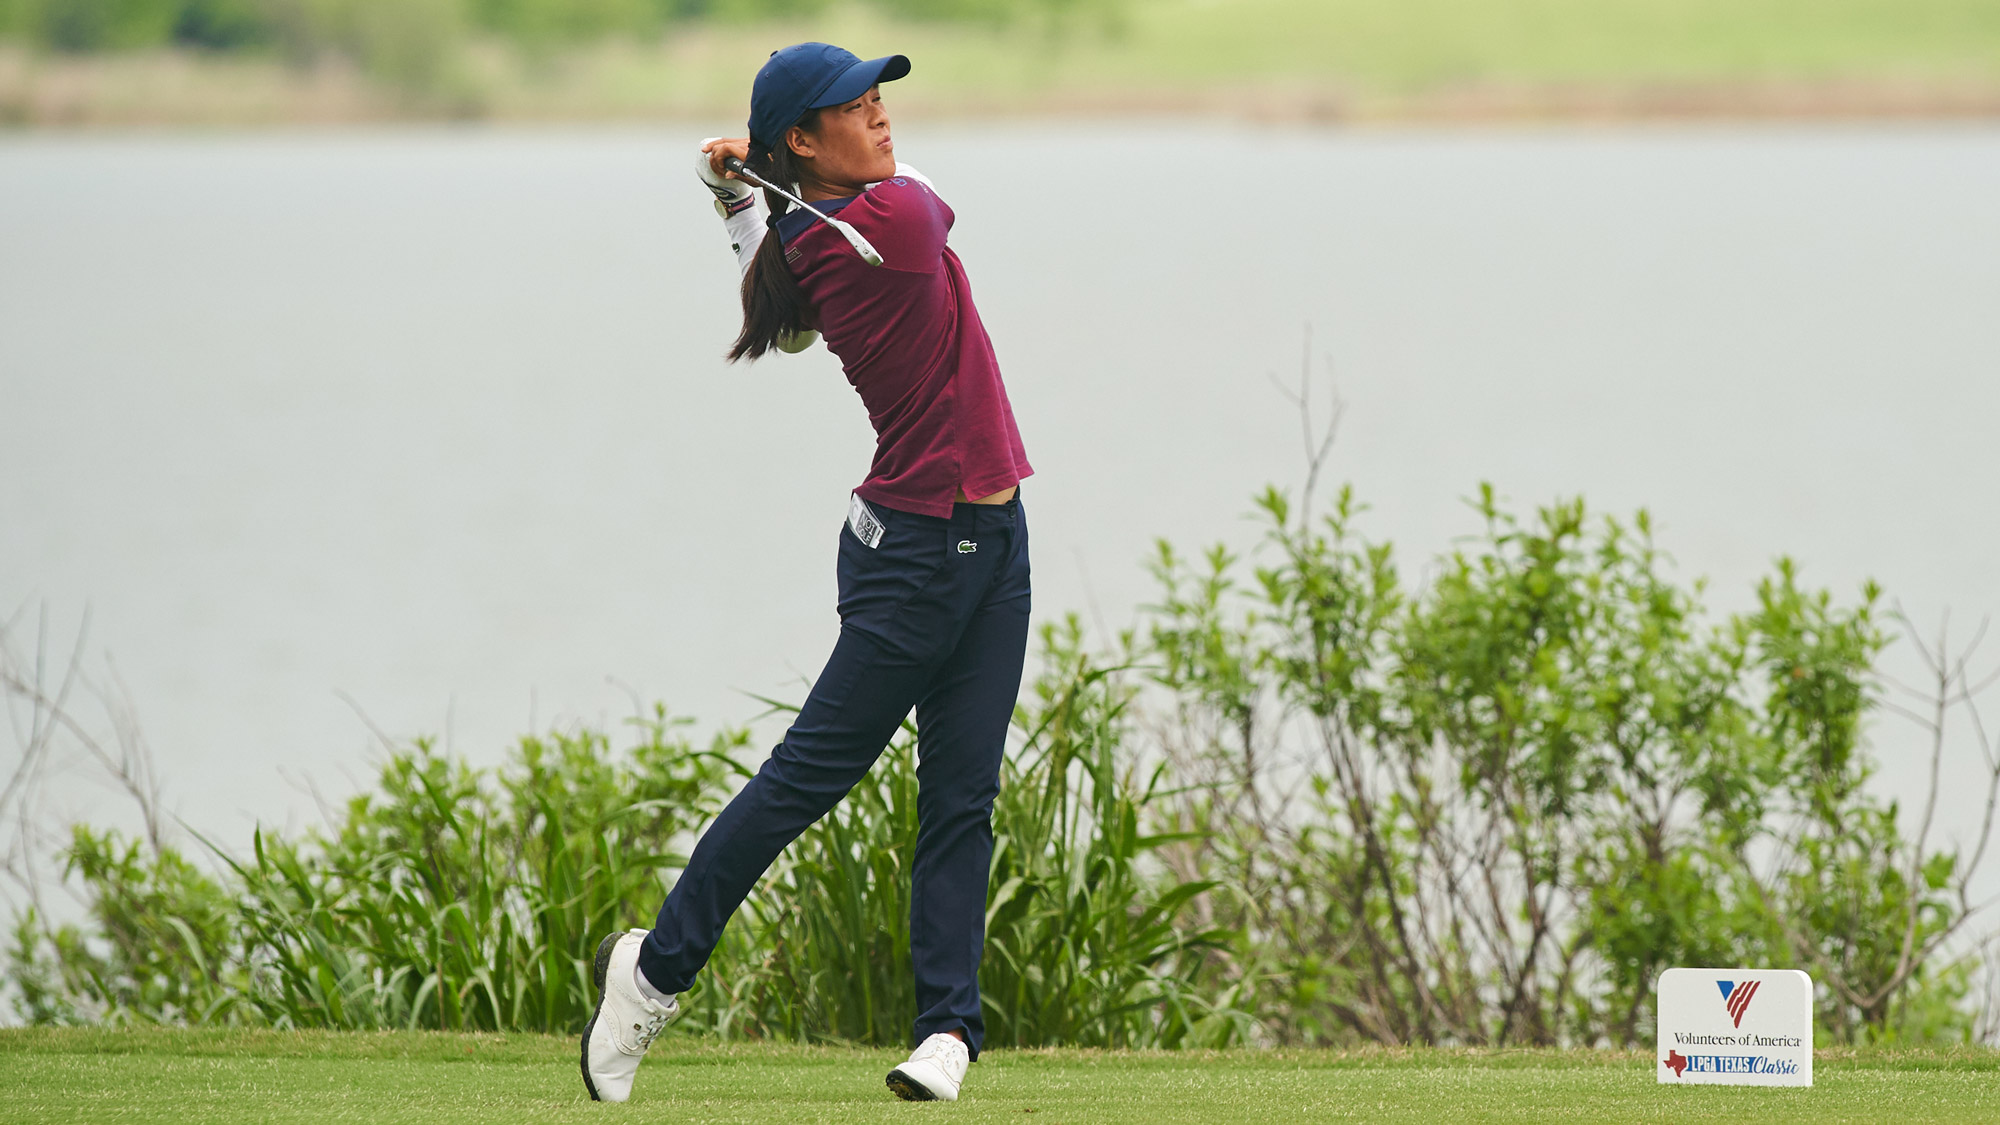 Celine Boutier at the VOA LPGA Texas Classic